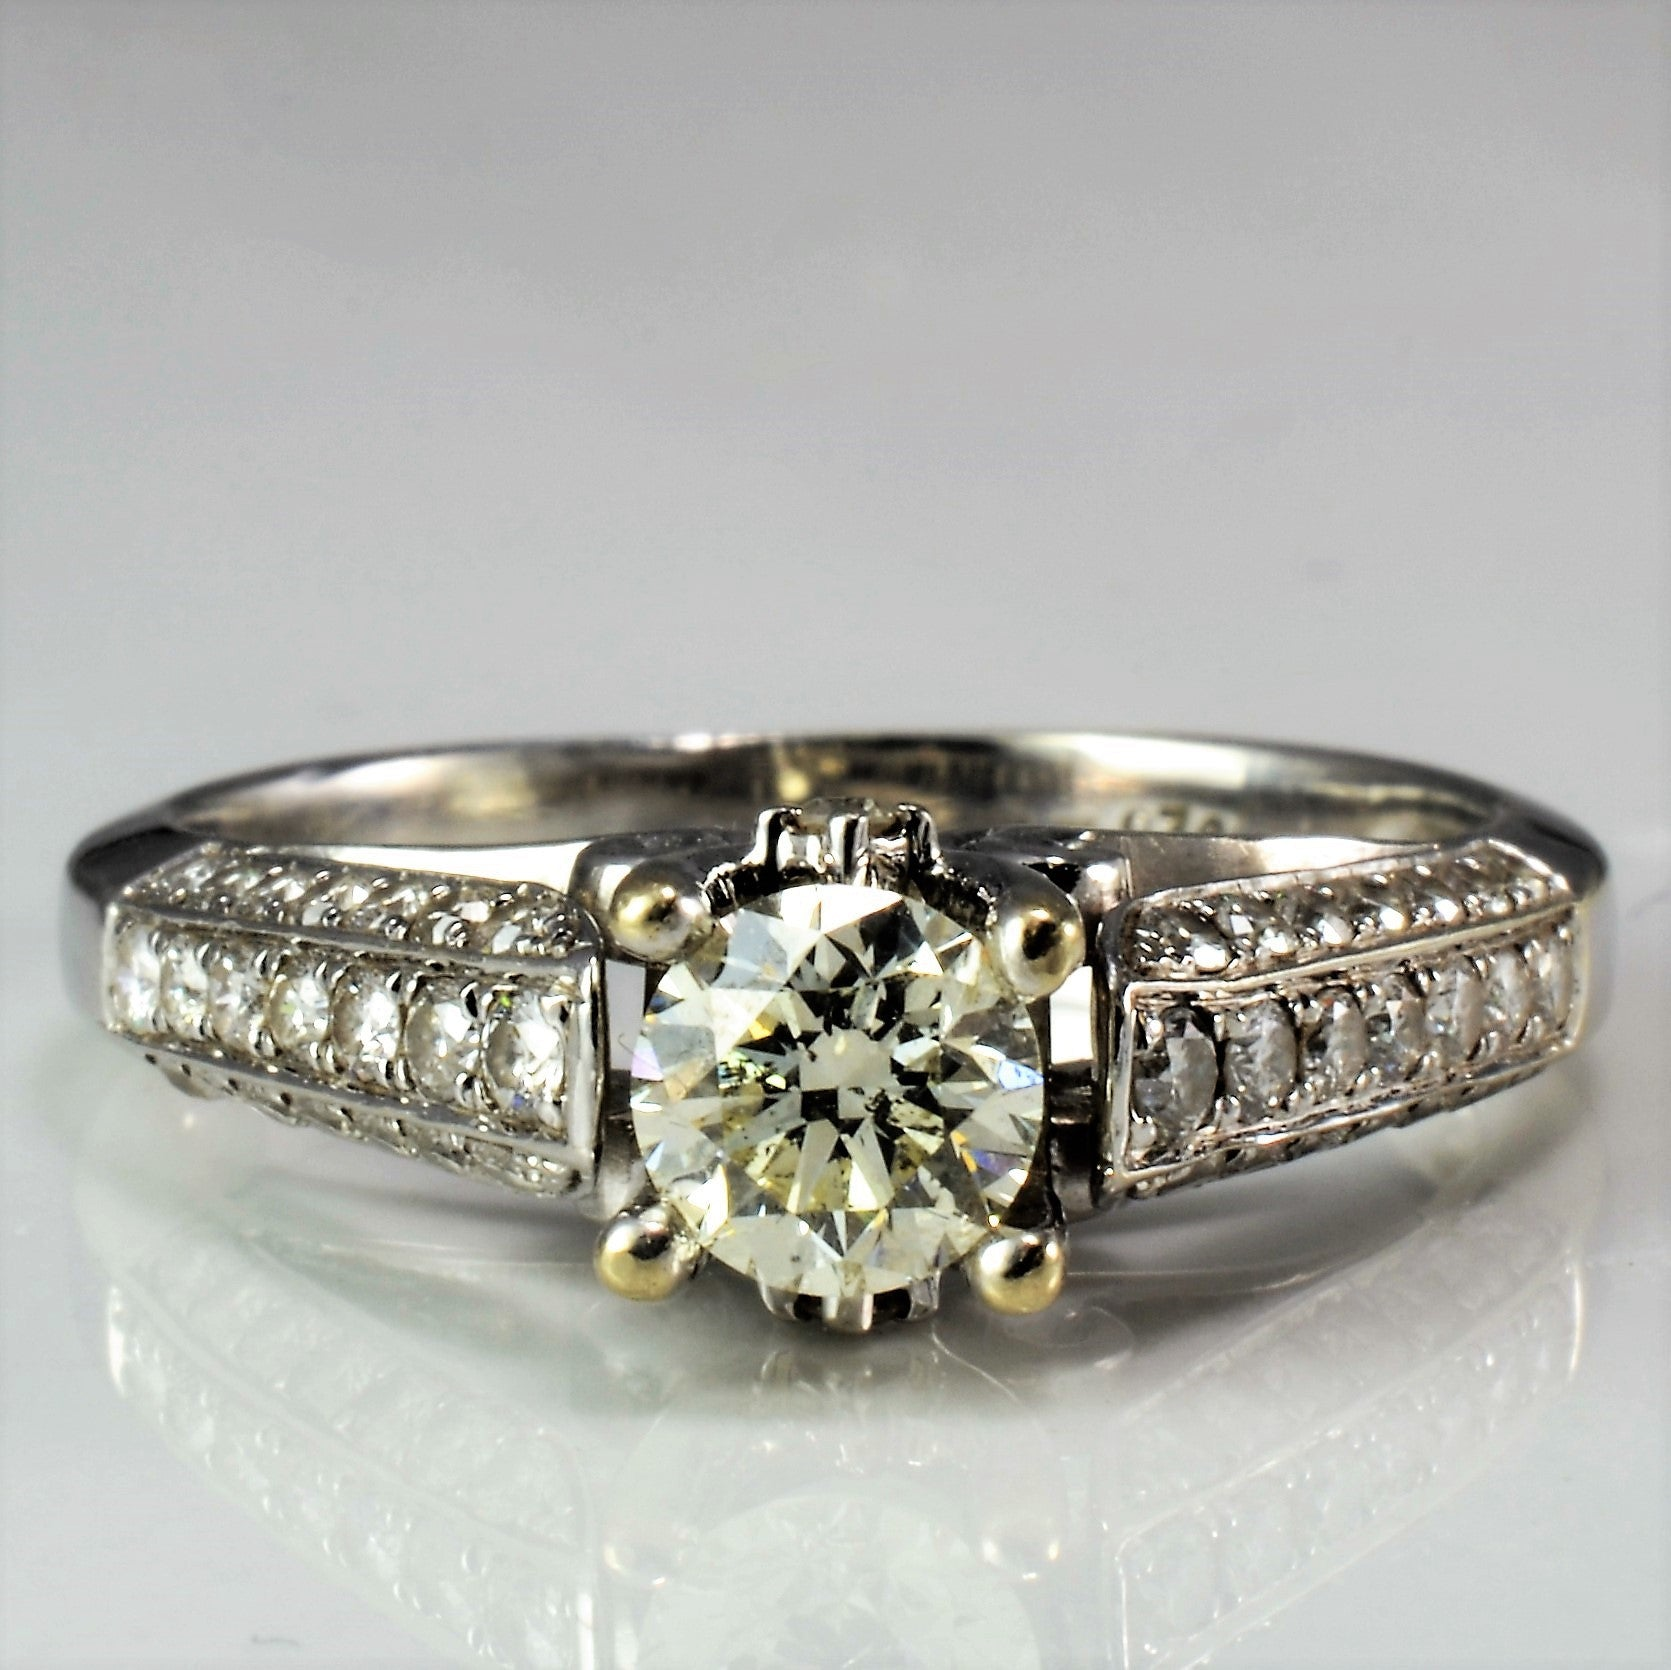 Intricate Cathedral Engagement Ring | 1.29 ctw, SZ 7.75 |